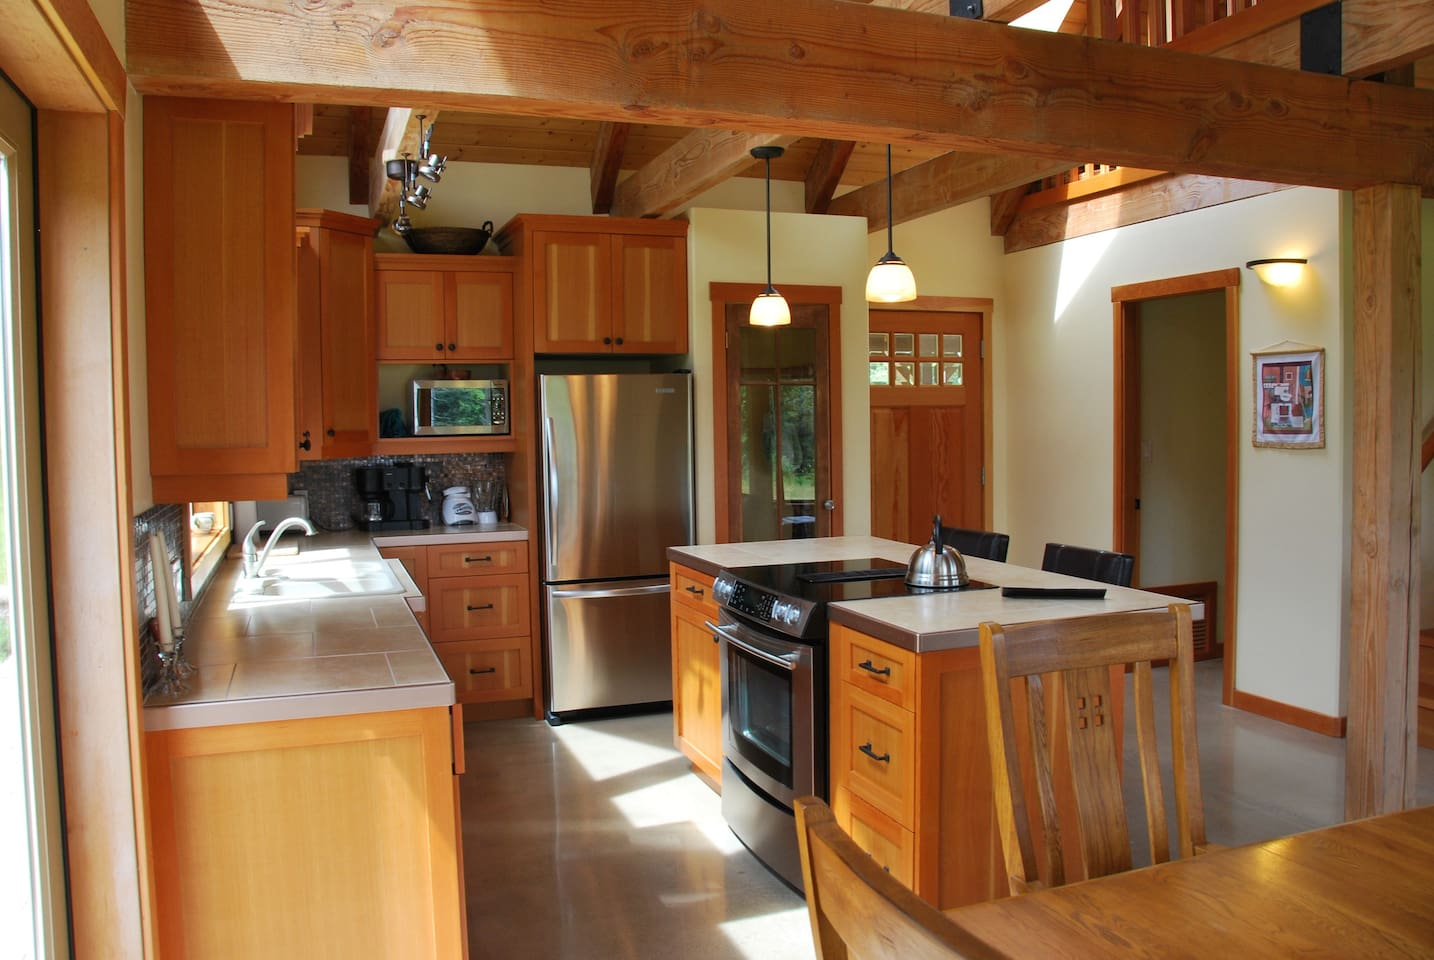 Fully equipped and beautifully crafted kitchen